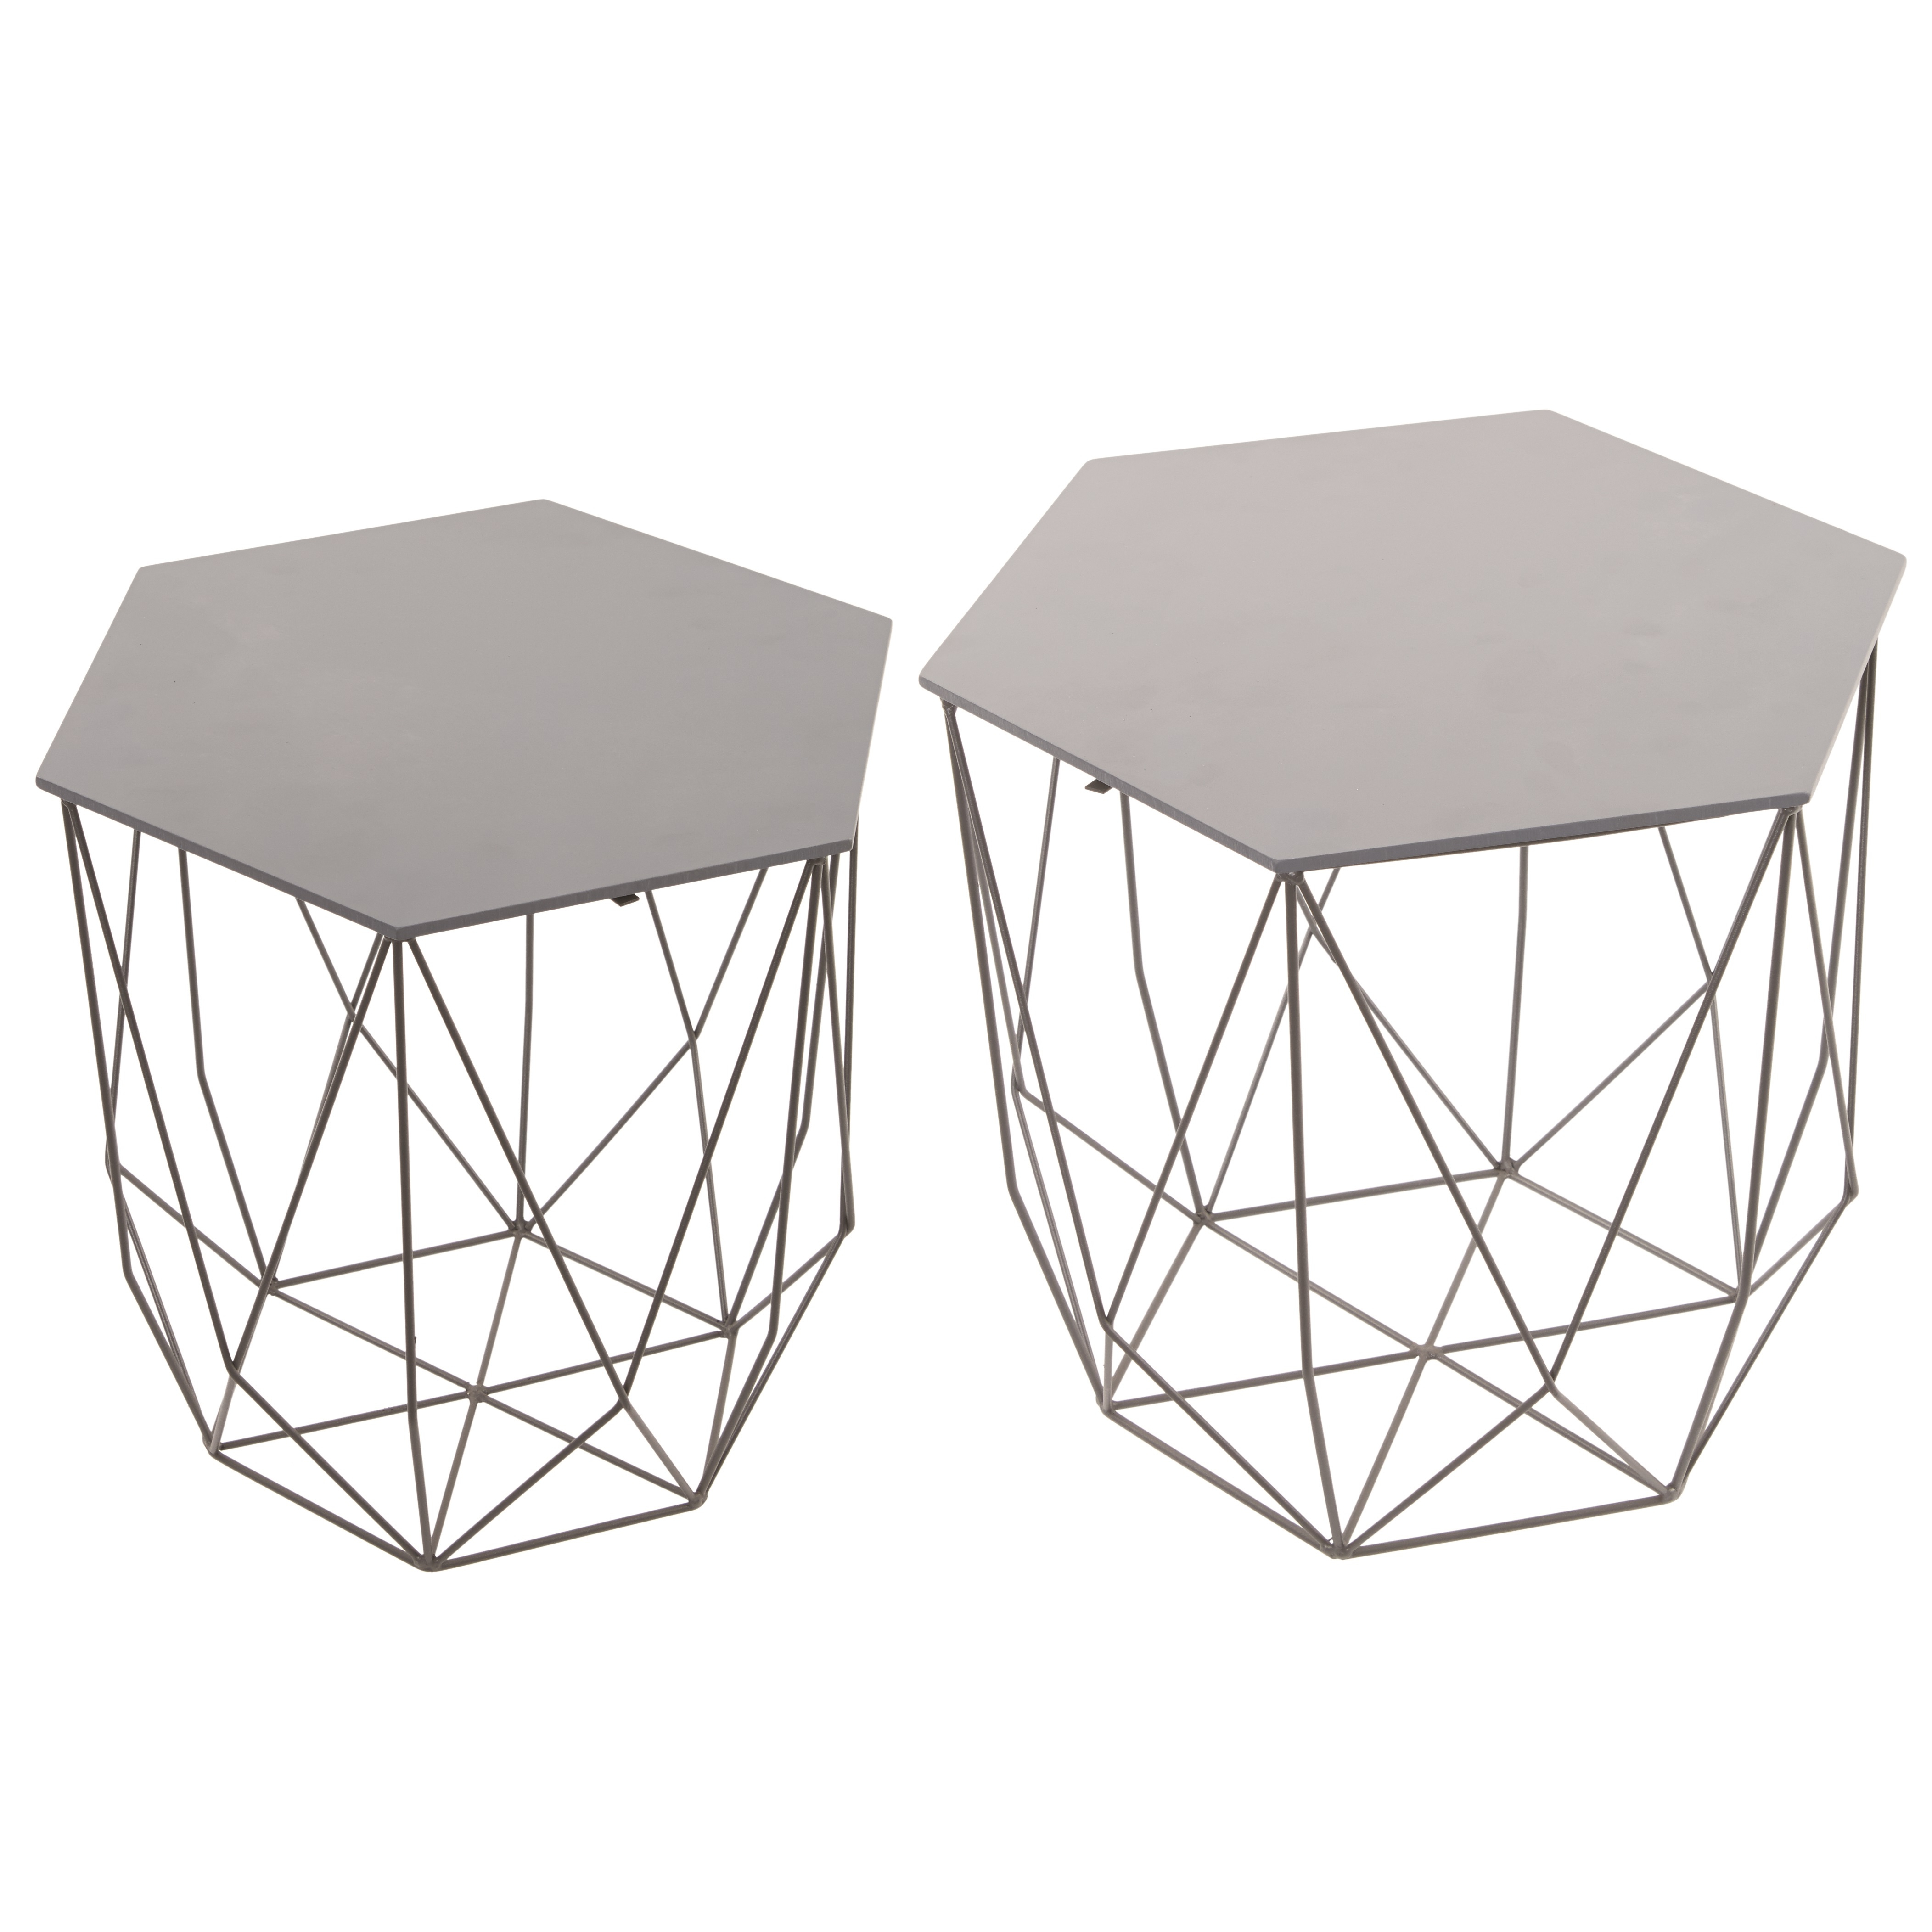 Trendy Hexagon Grey Six Sided Wire & Wood Side Table Set Of 2 With Regard To Black Wire Coffee Tables (View 4 of 20)